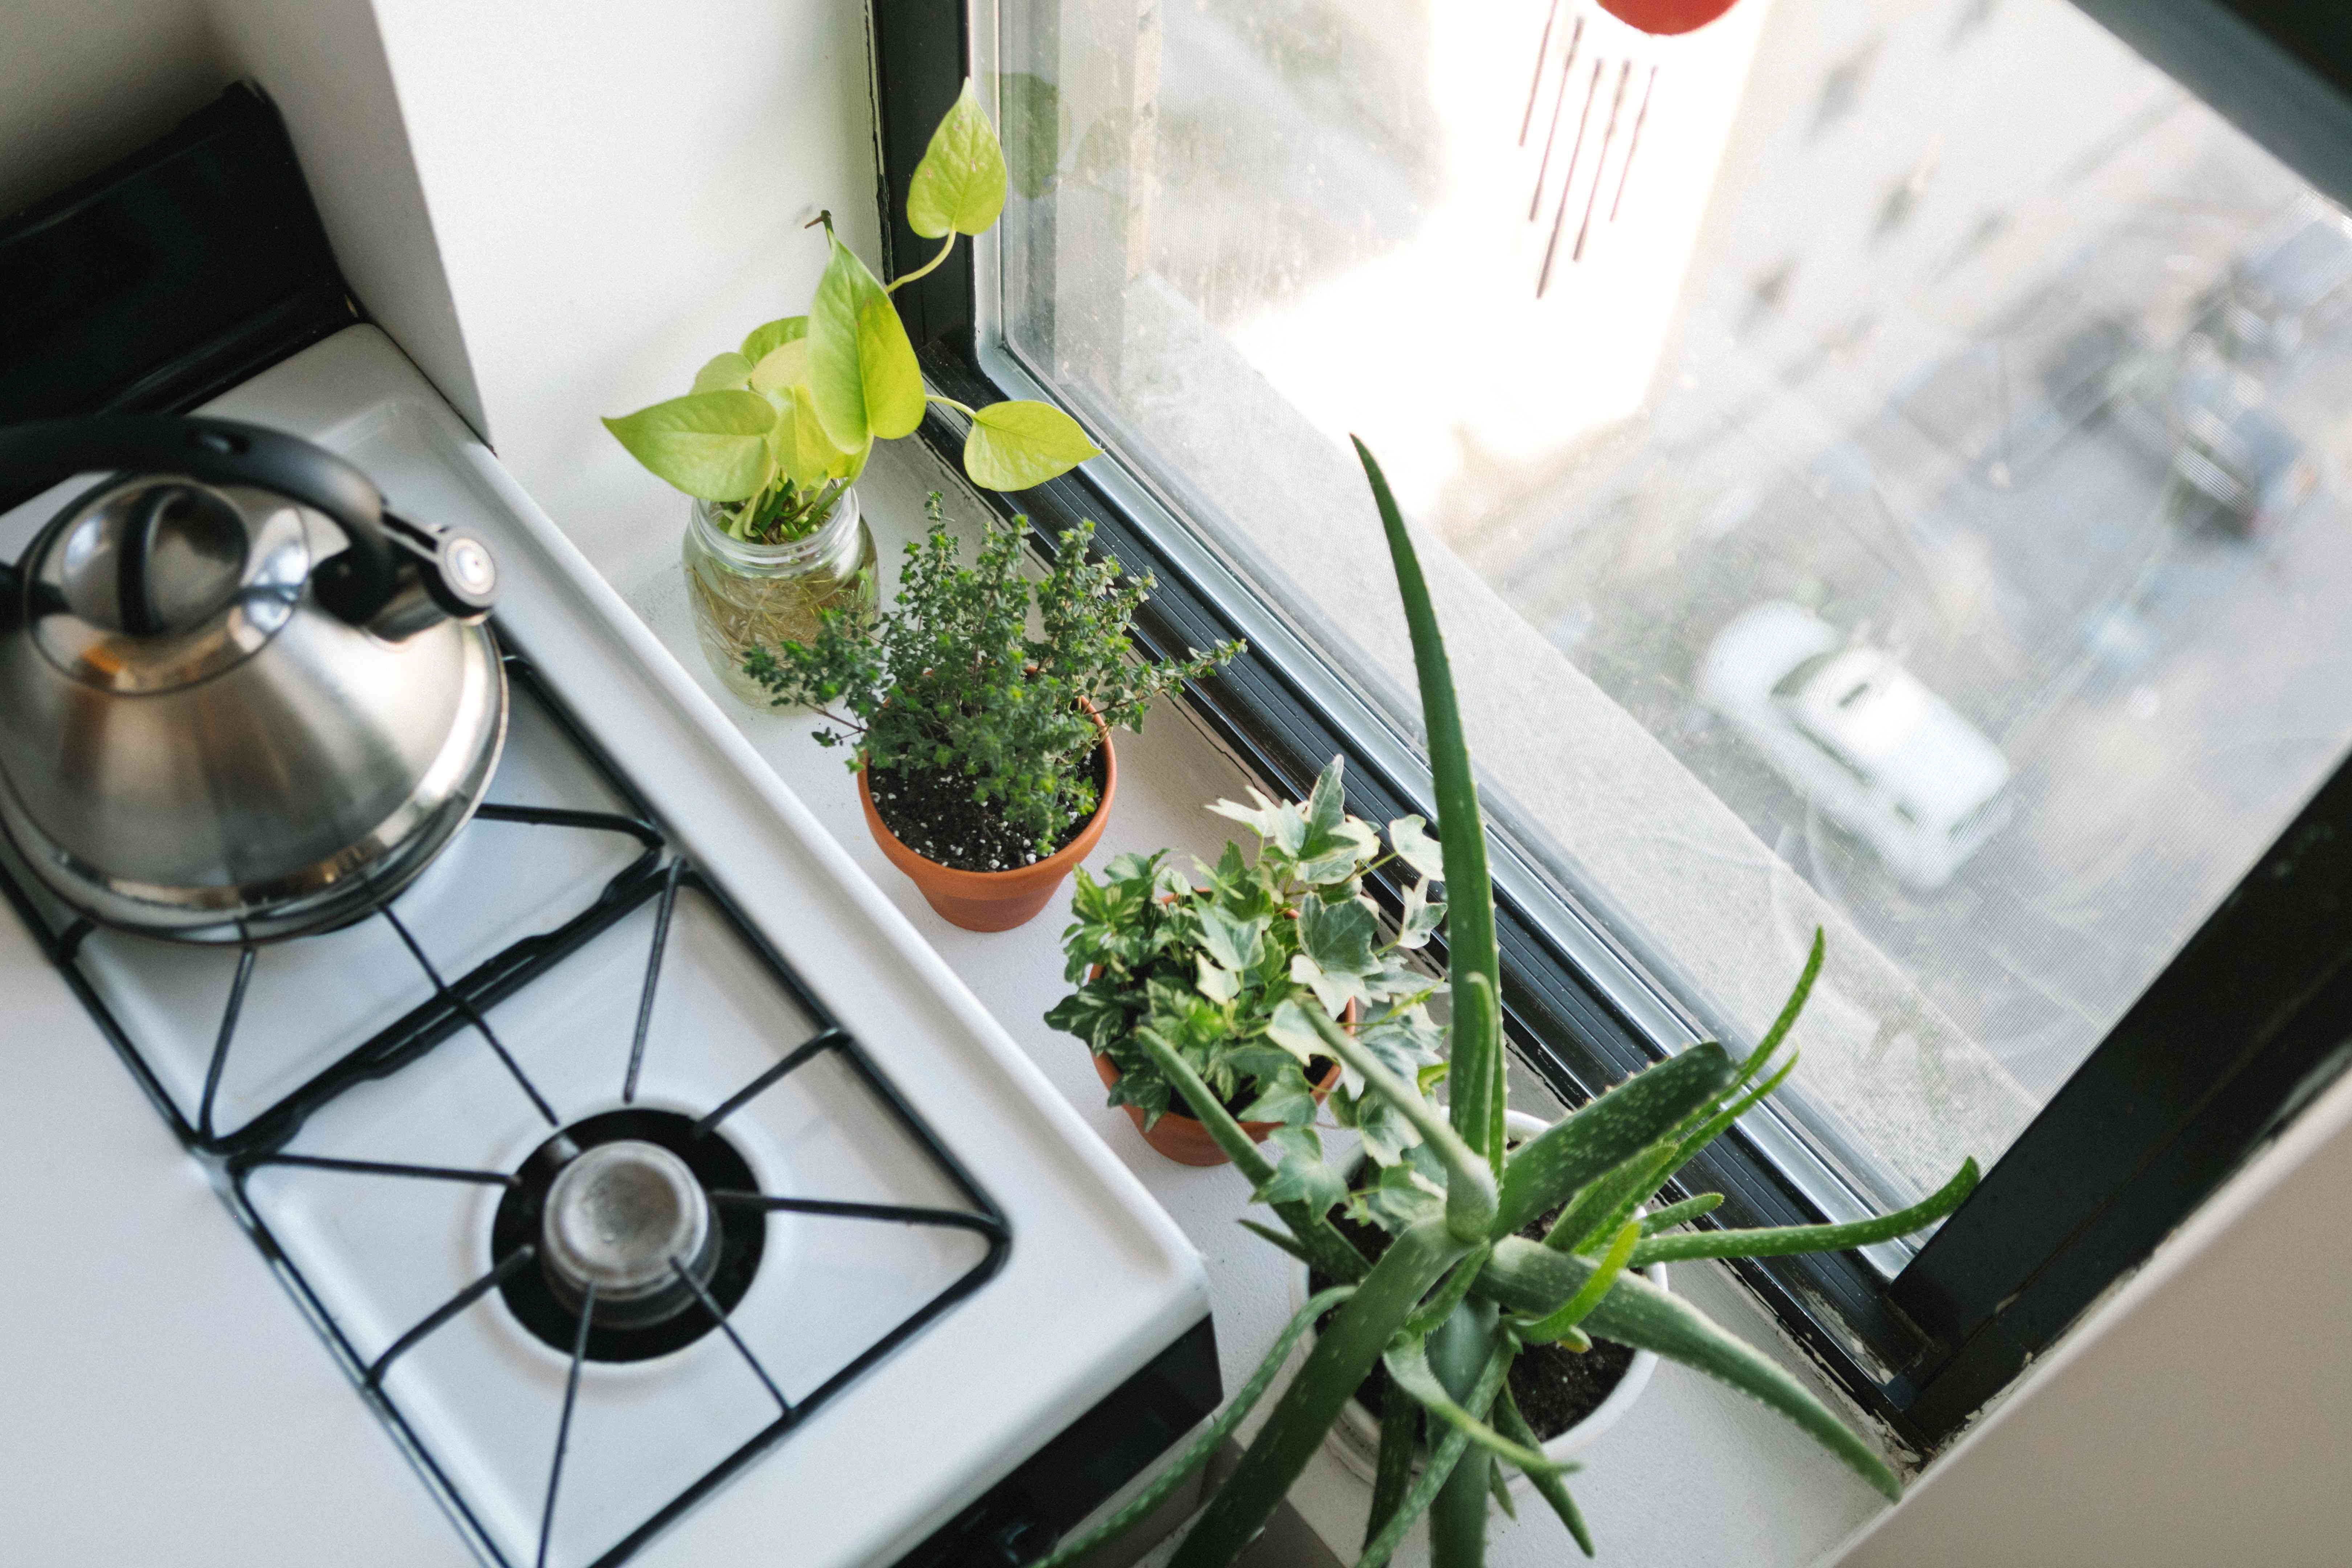 rosemary and other plants in kitchen near city window